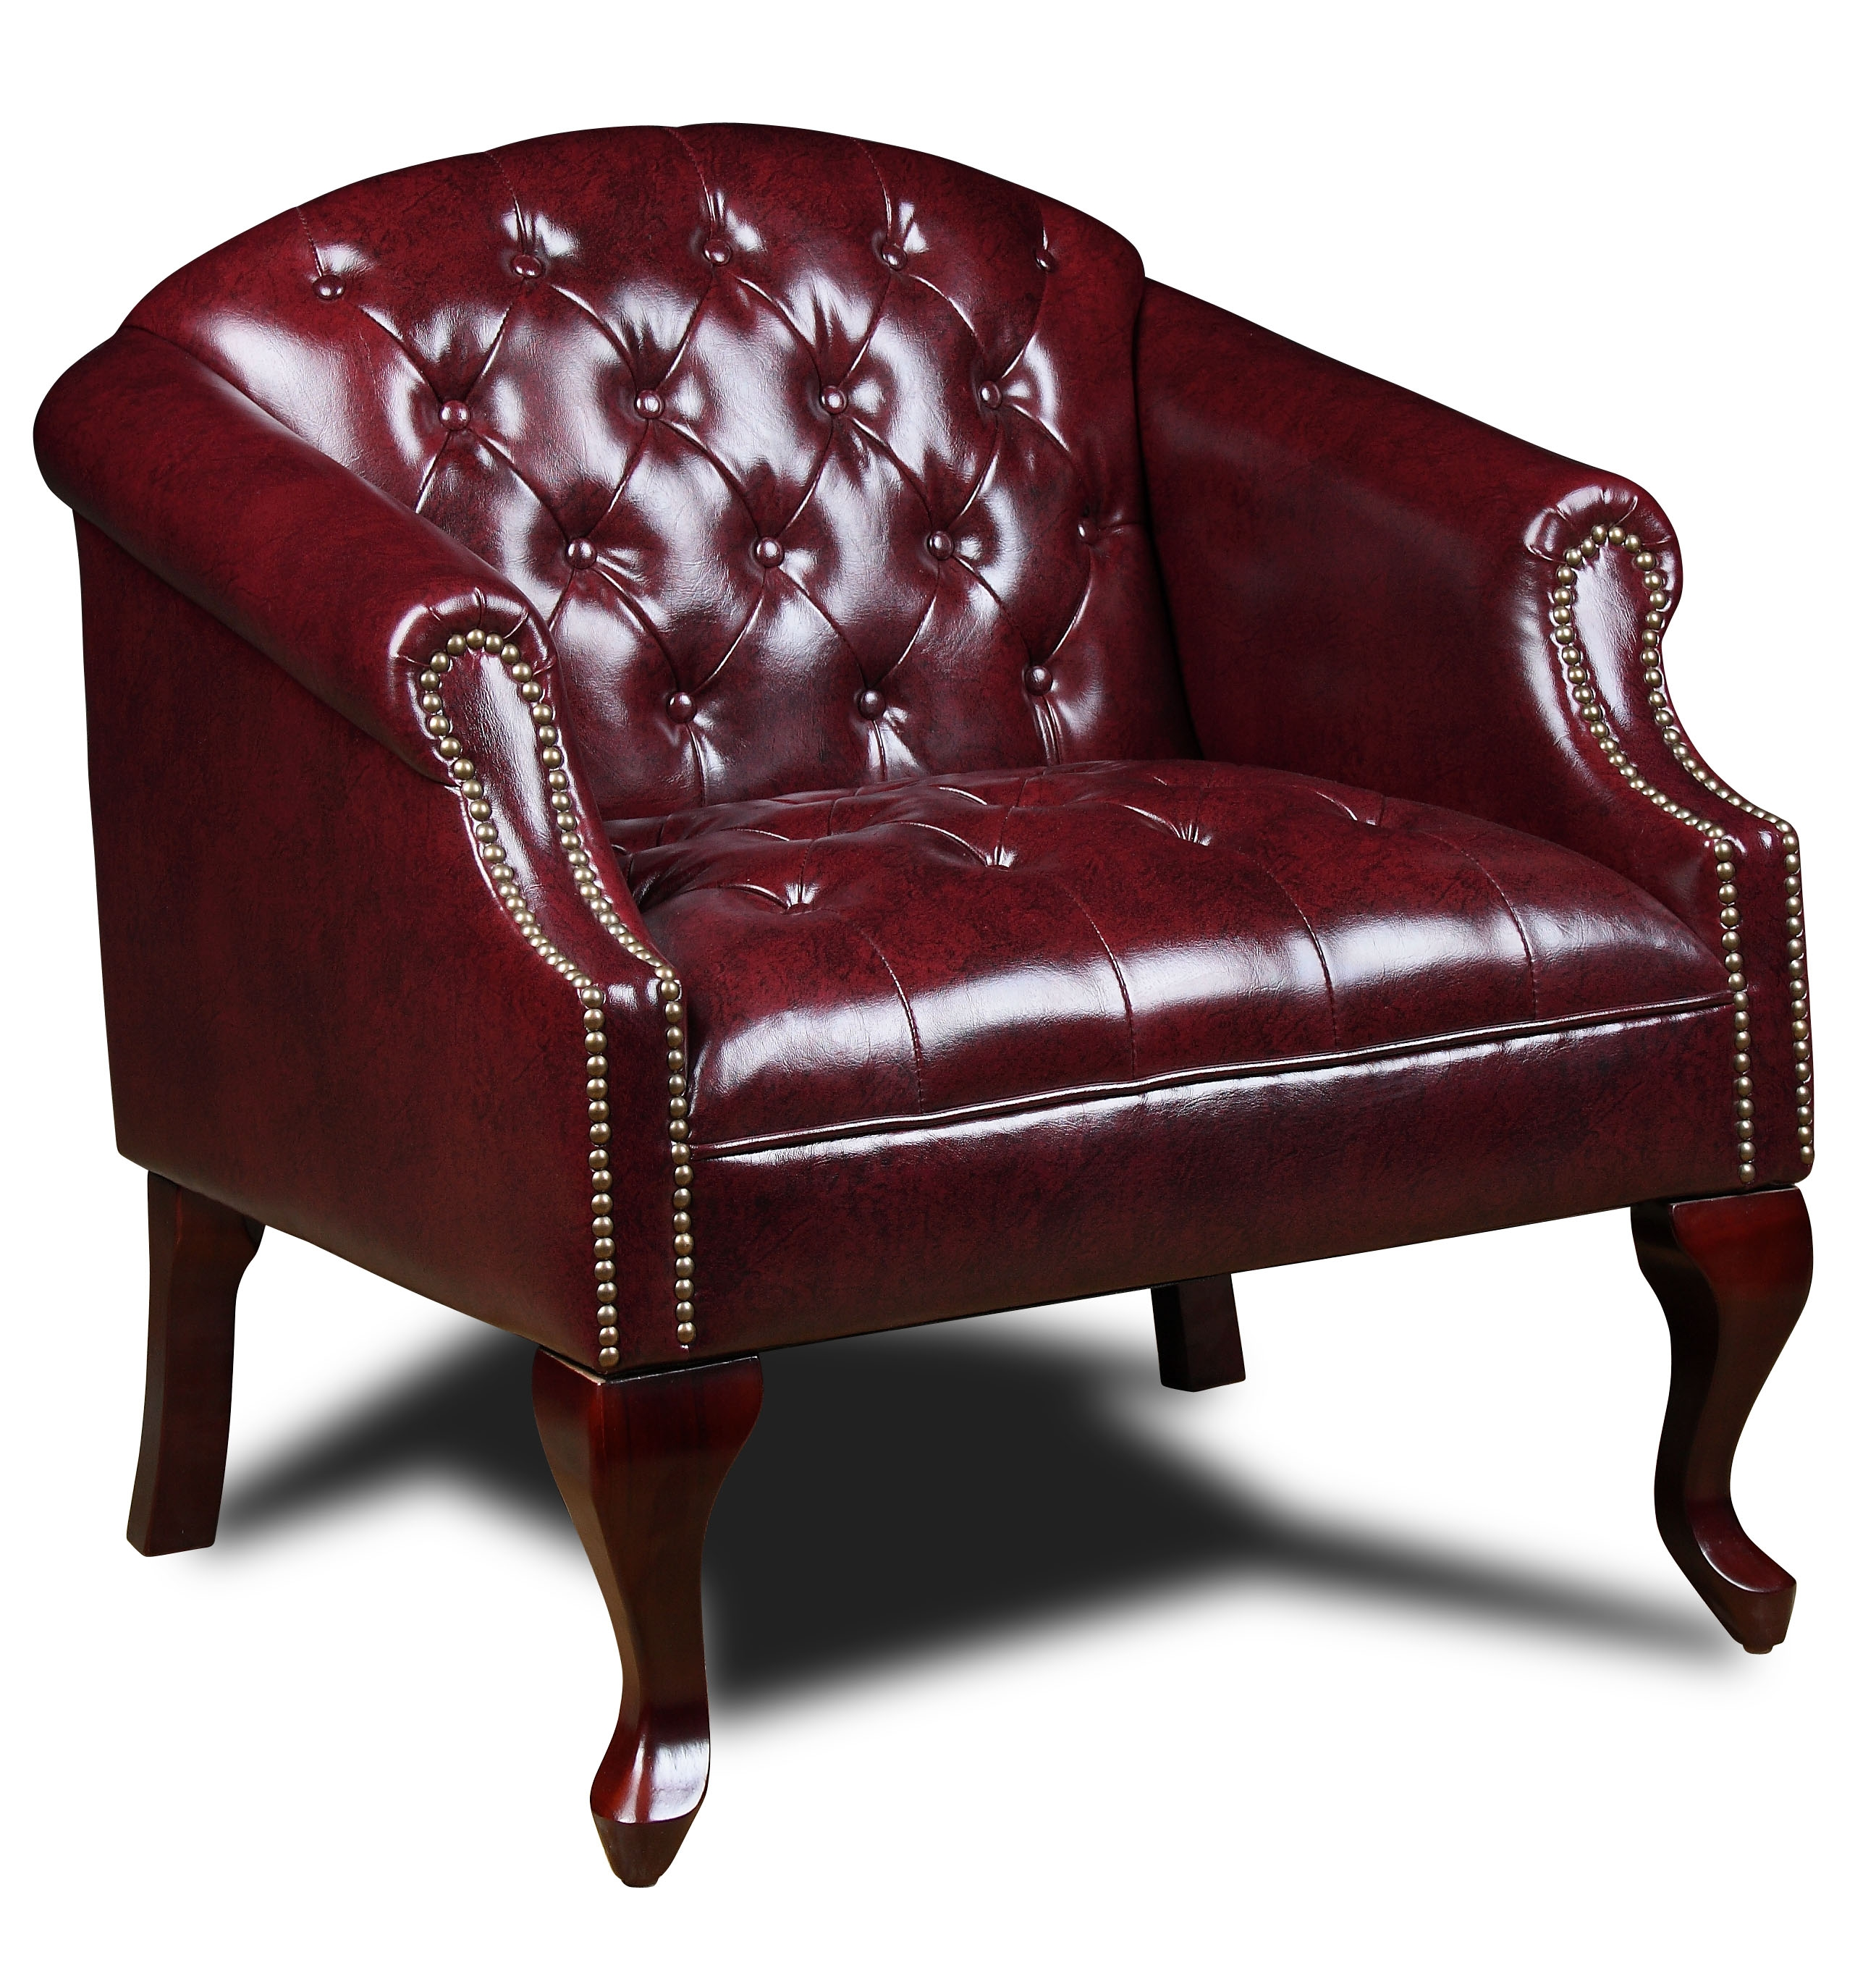 Boss Office & Home Oxblood Classic Traditional Button Tufted Club Chair